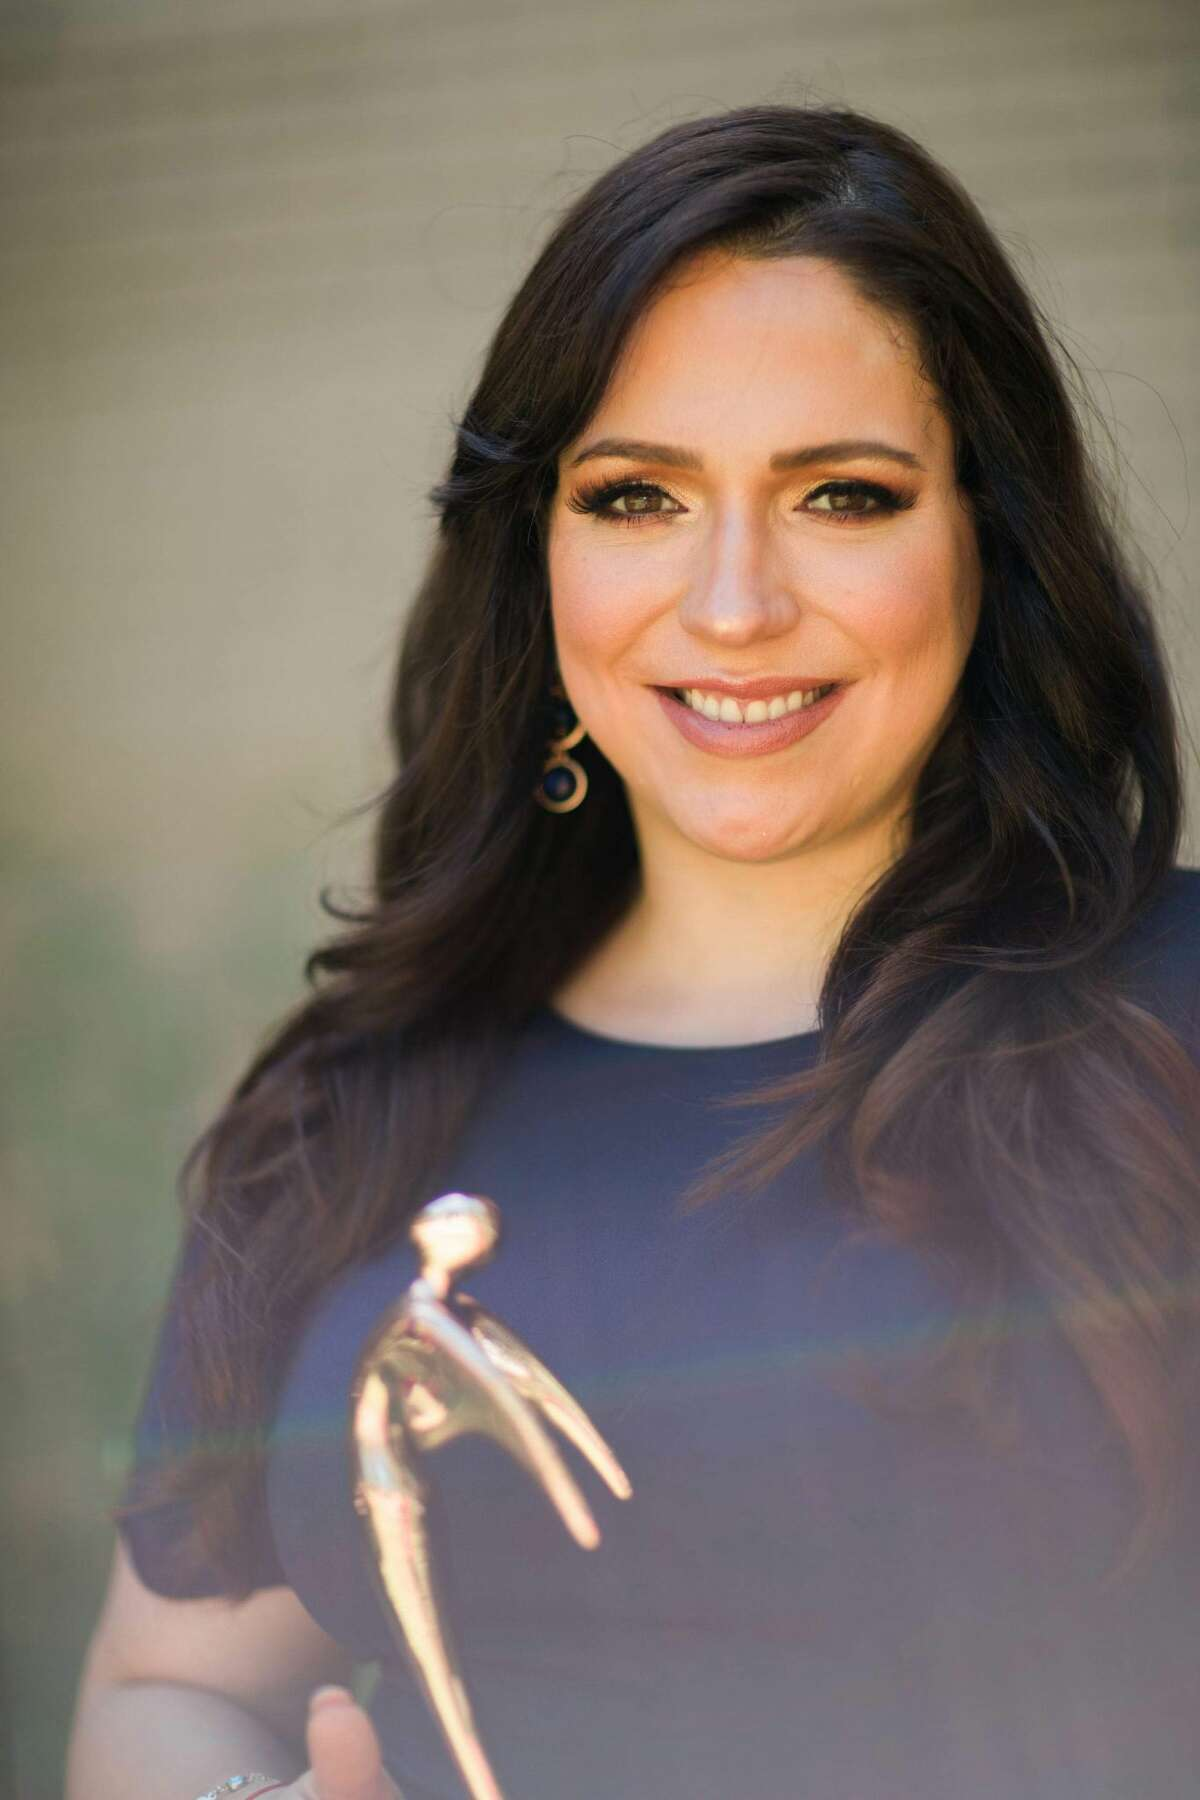 """Univision anchor Myrna Salas received a Telly Award for her special, """"Pearl Harbor, La Guerra Que Cambió mi Vida,"""" or the war that changed my life."""